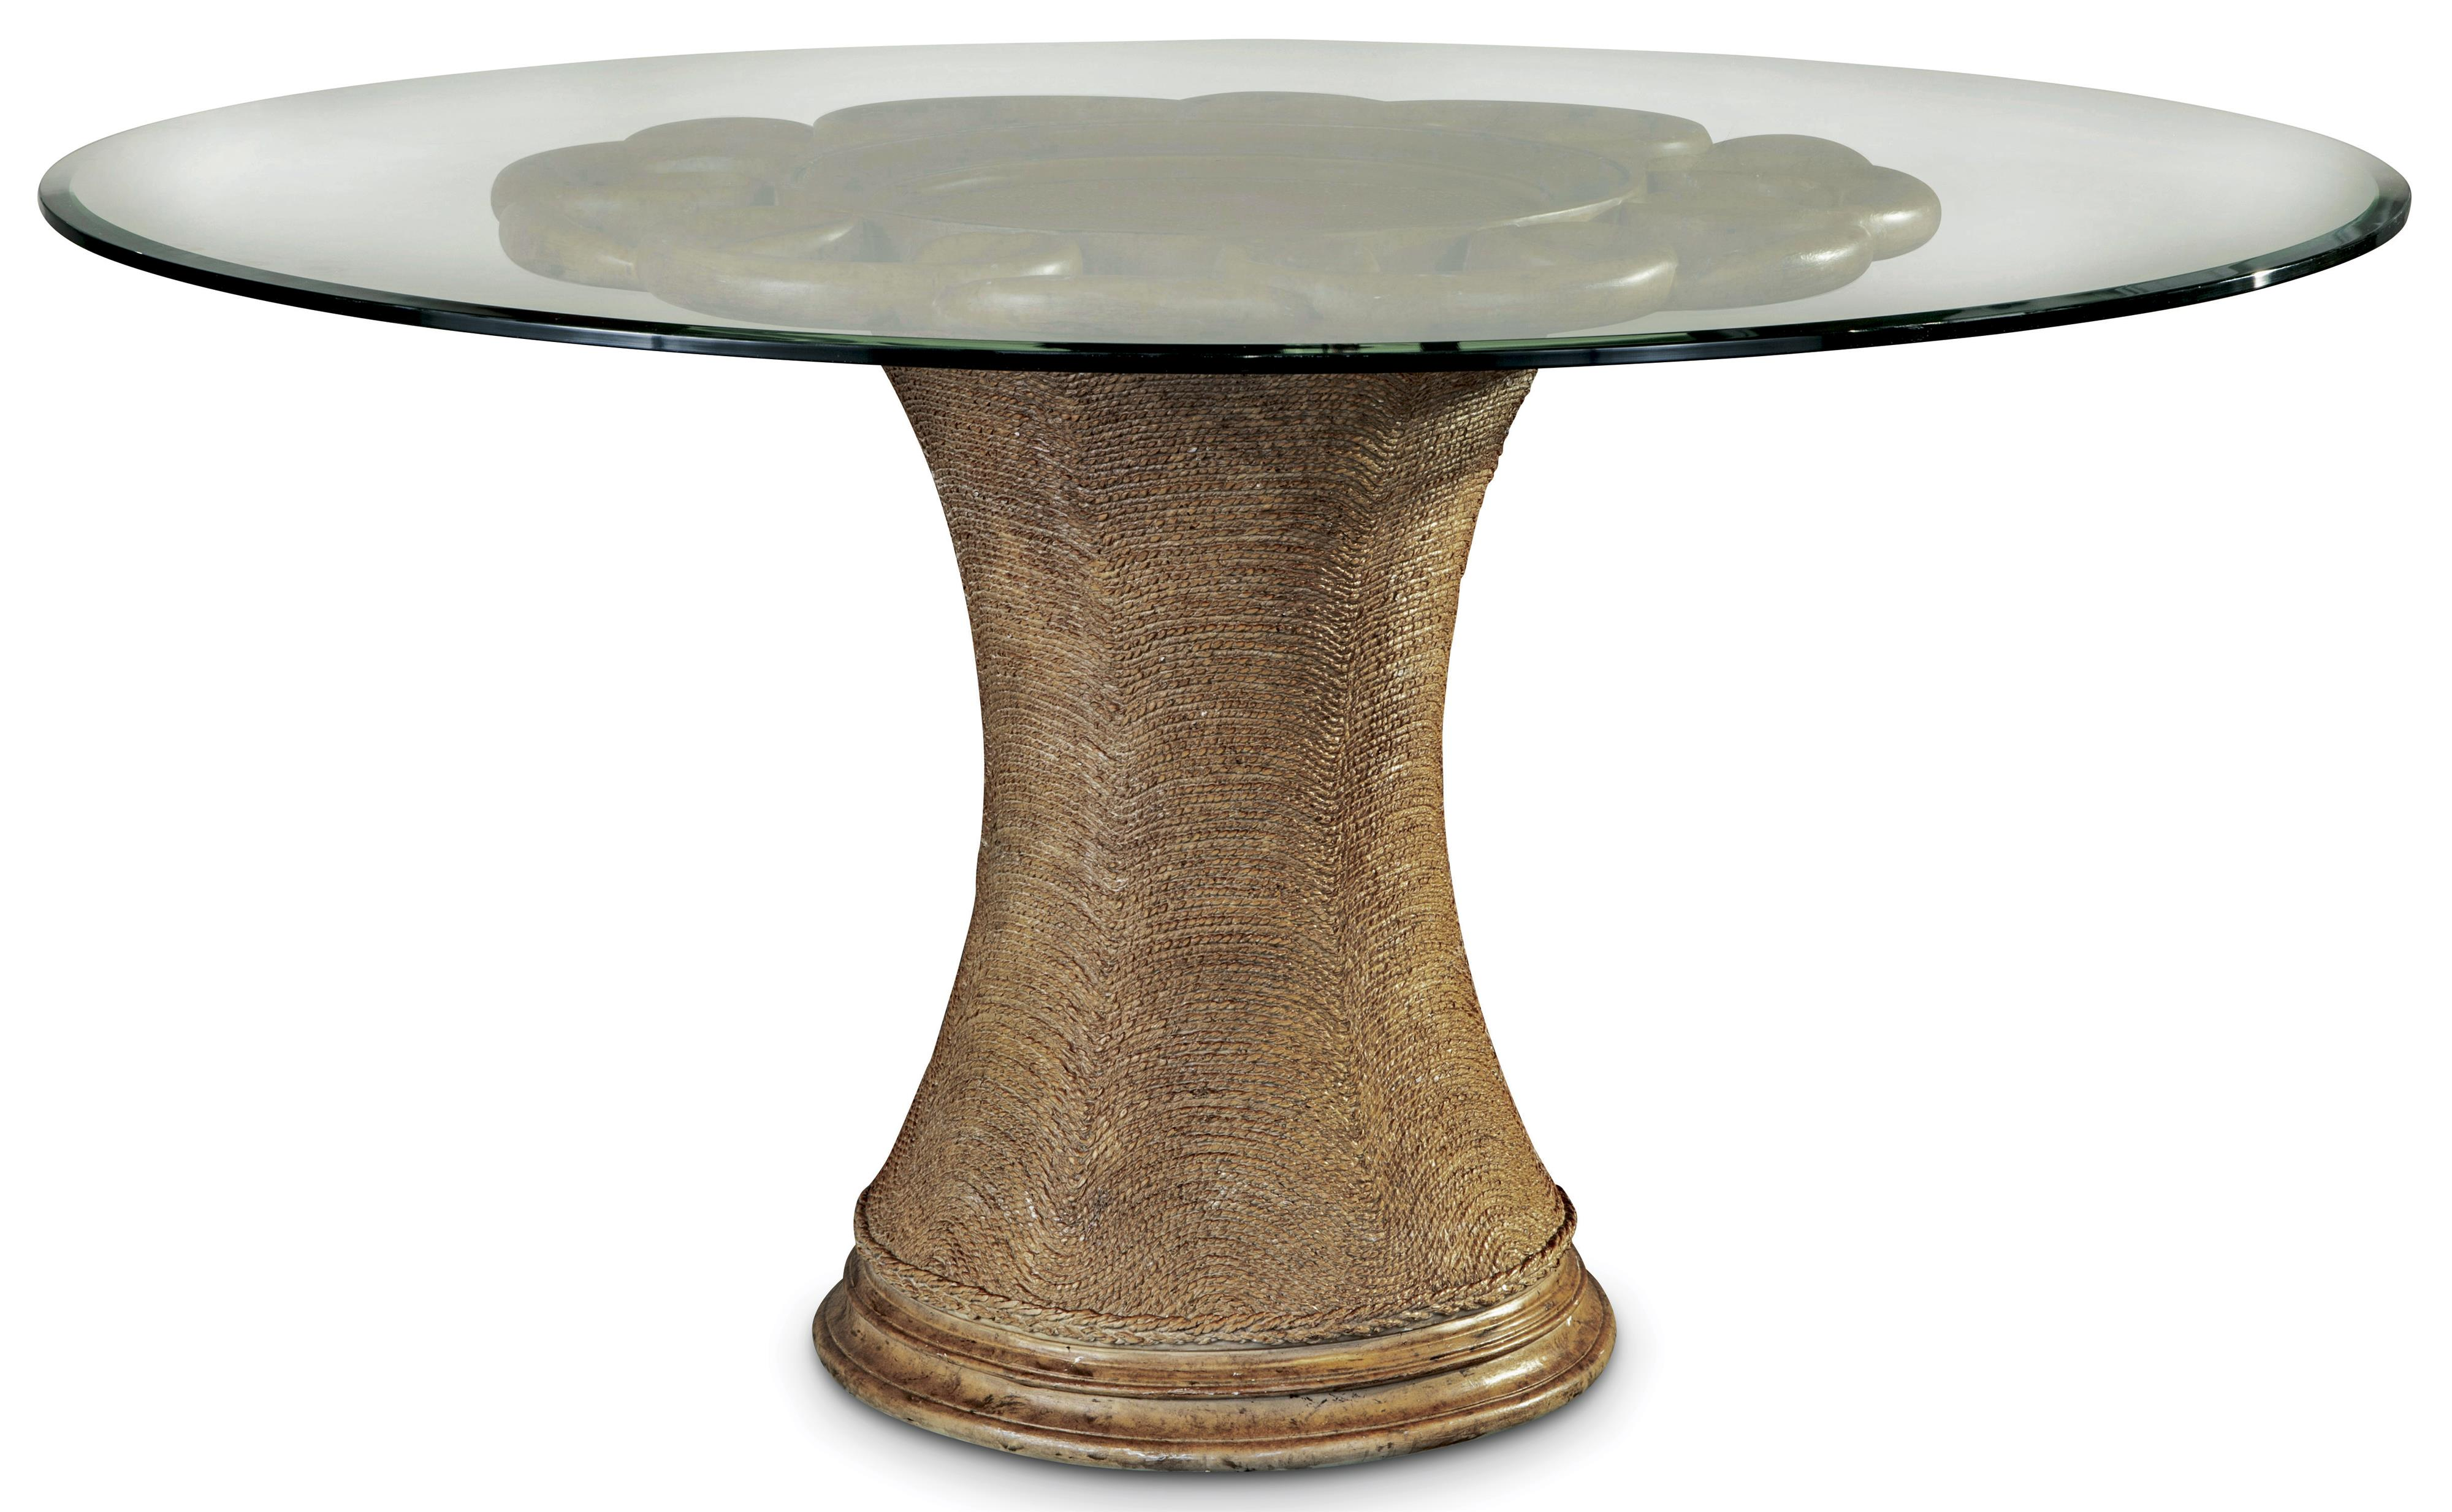 60 inch round dining table with glass top and pedestal base by a r t